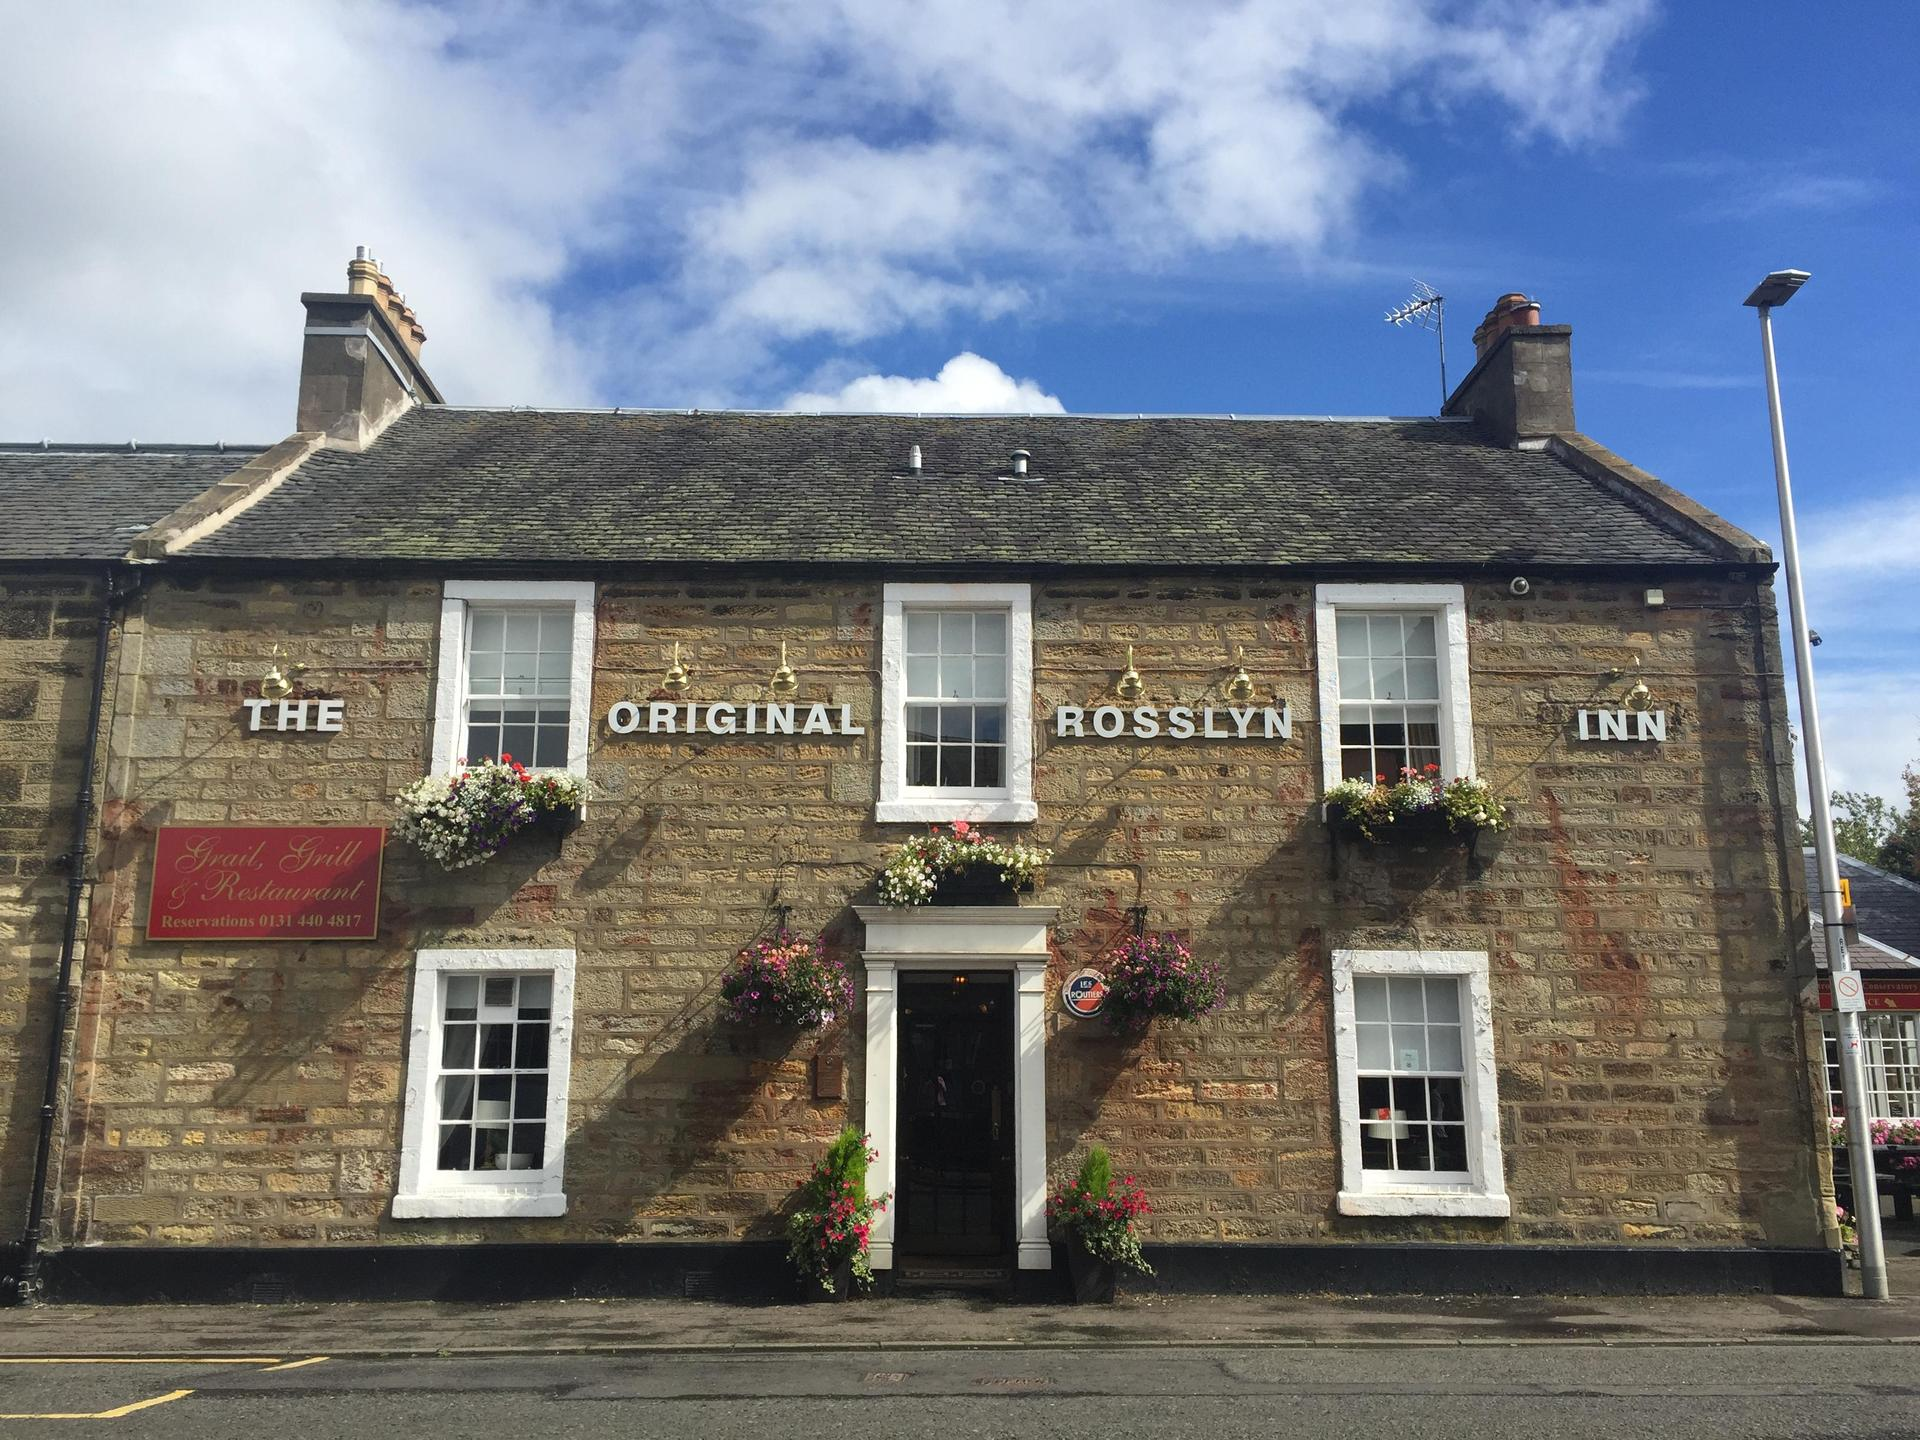 The Original Rosslyn Inn in Scotland